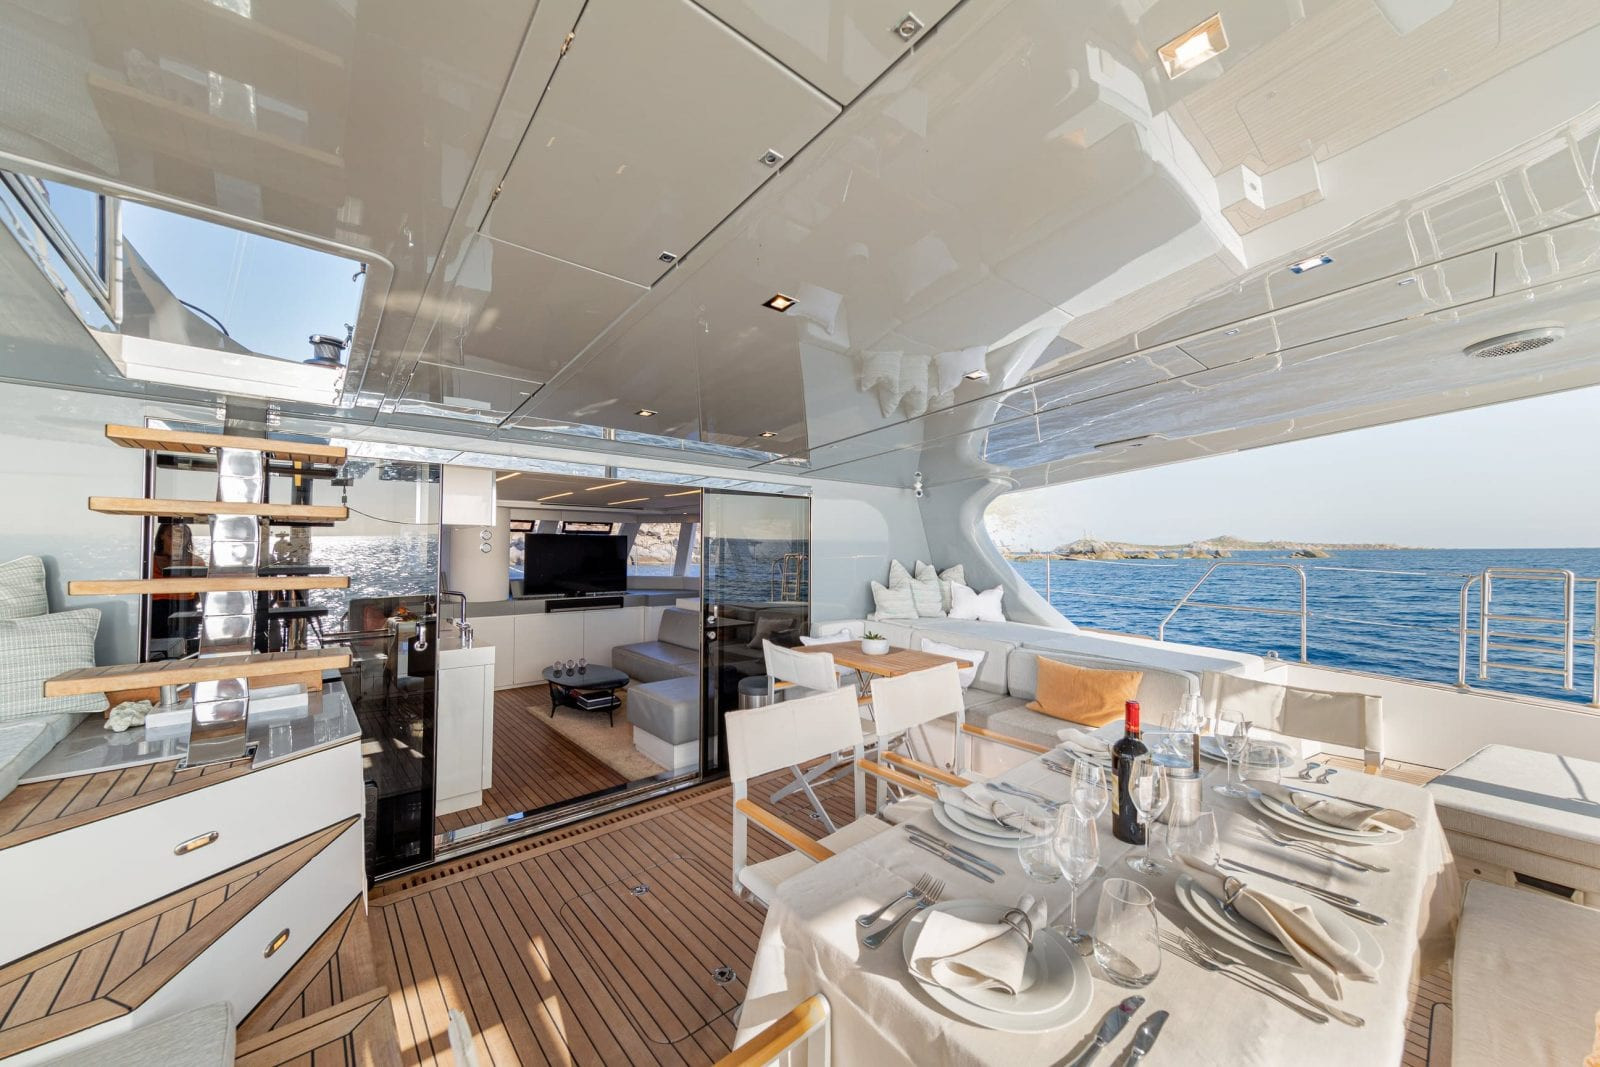 ADEA - aft deck, up to the fly bridge